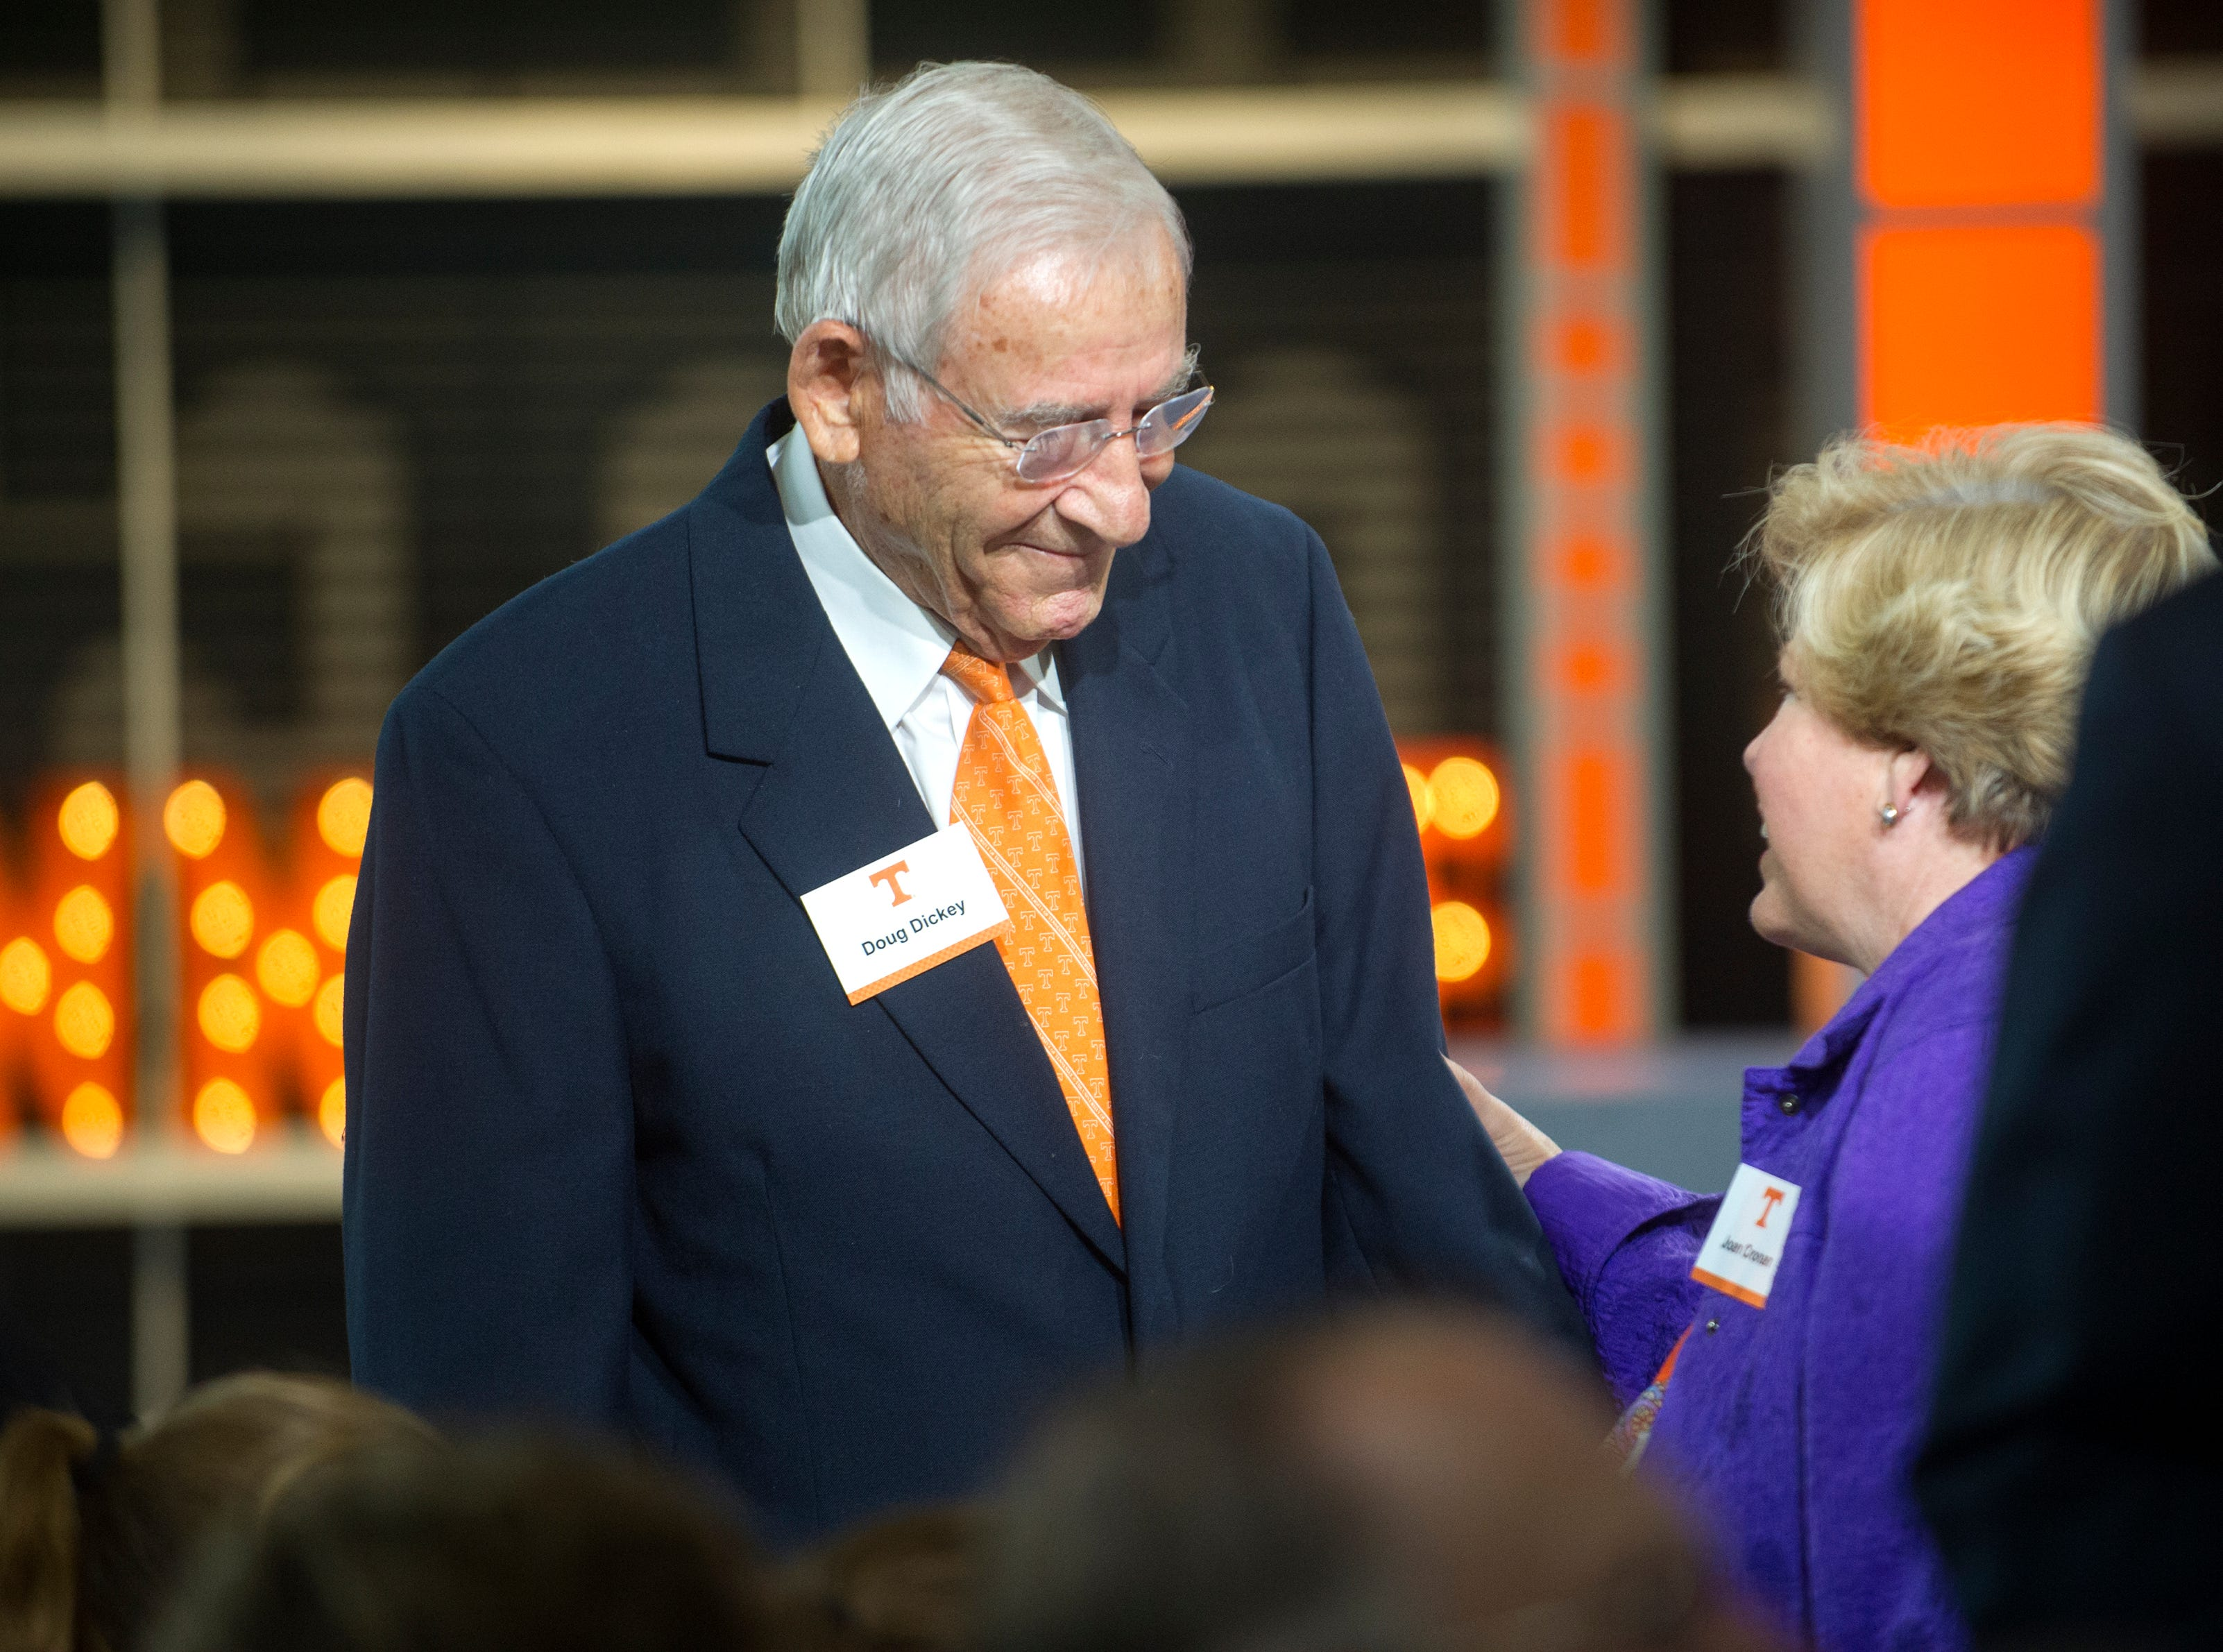 Former athletic director and football coach Dough Dickey greet Joan Cronan during the dedication of the Doug Dickey Hall of Fame Plaza and the Doug Dickey Hall of Champions at the Neyland-Thompson Center in Knoxville Friday, Oct. 2, 2015.